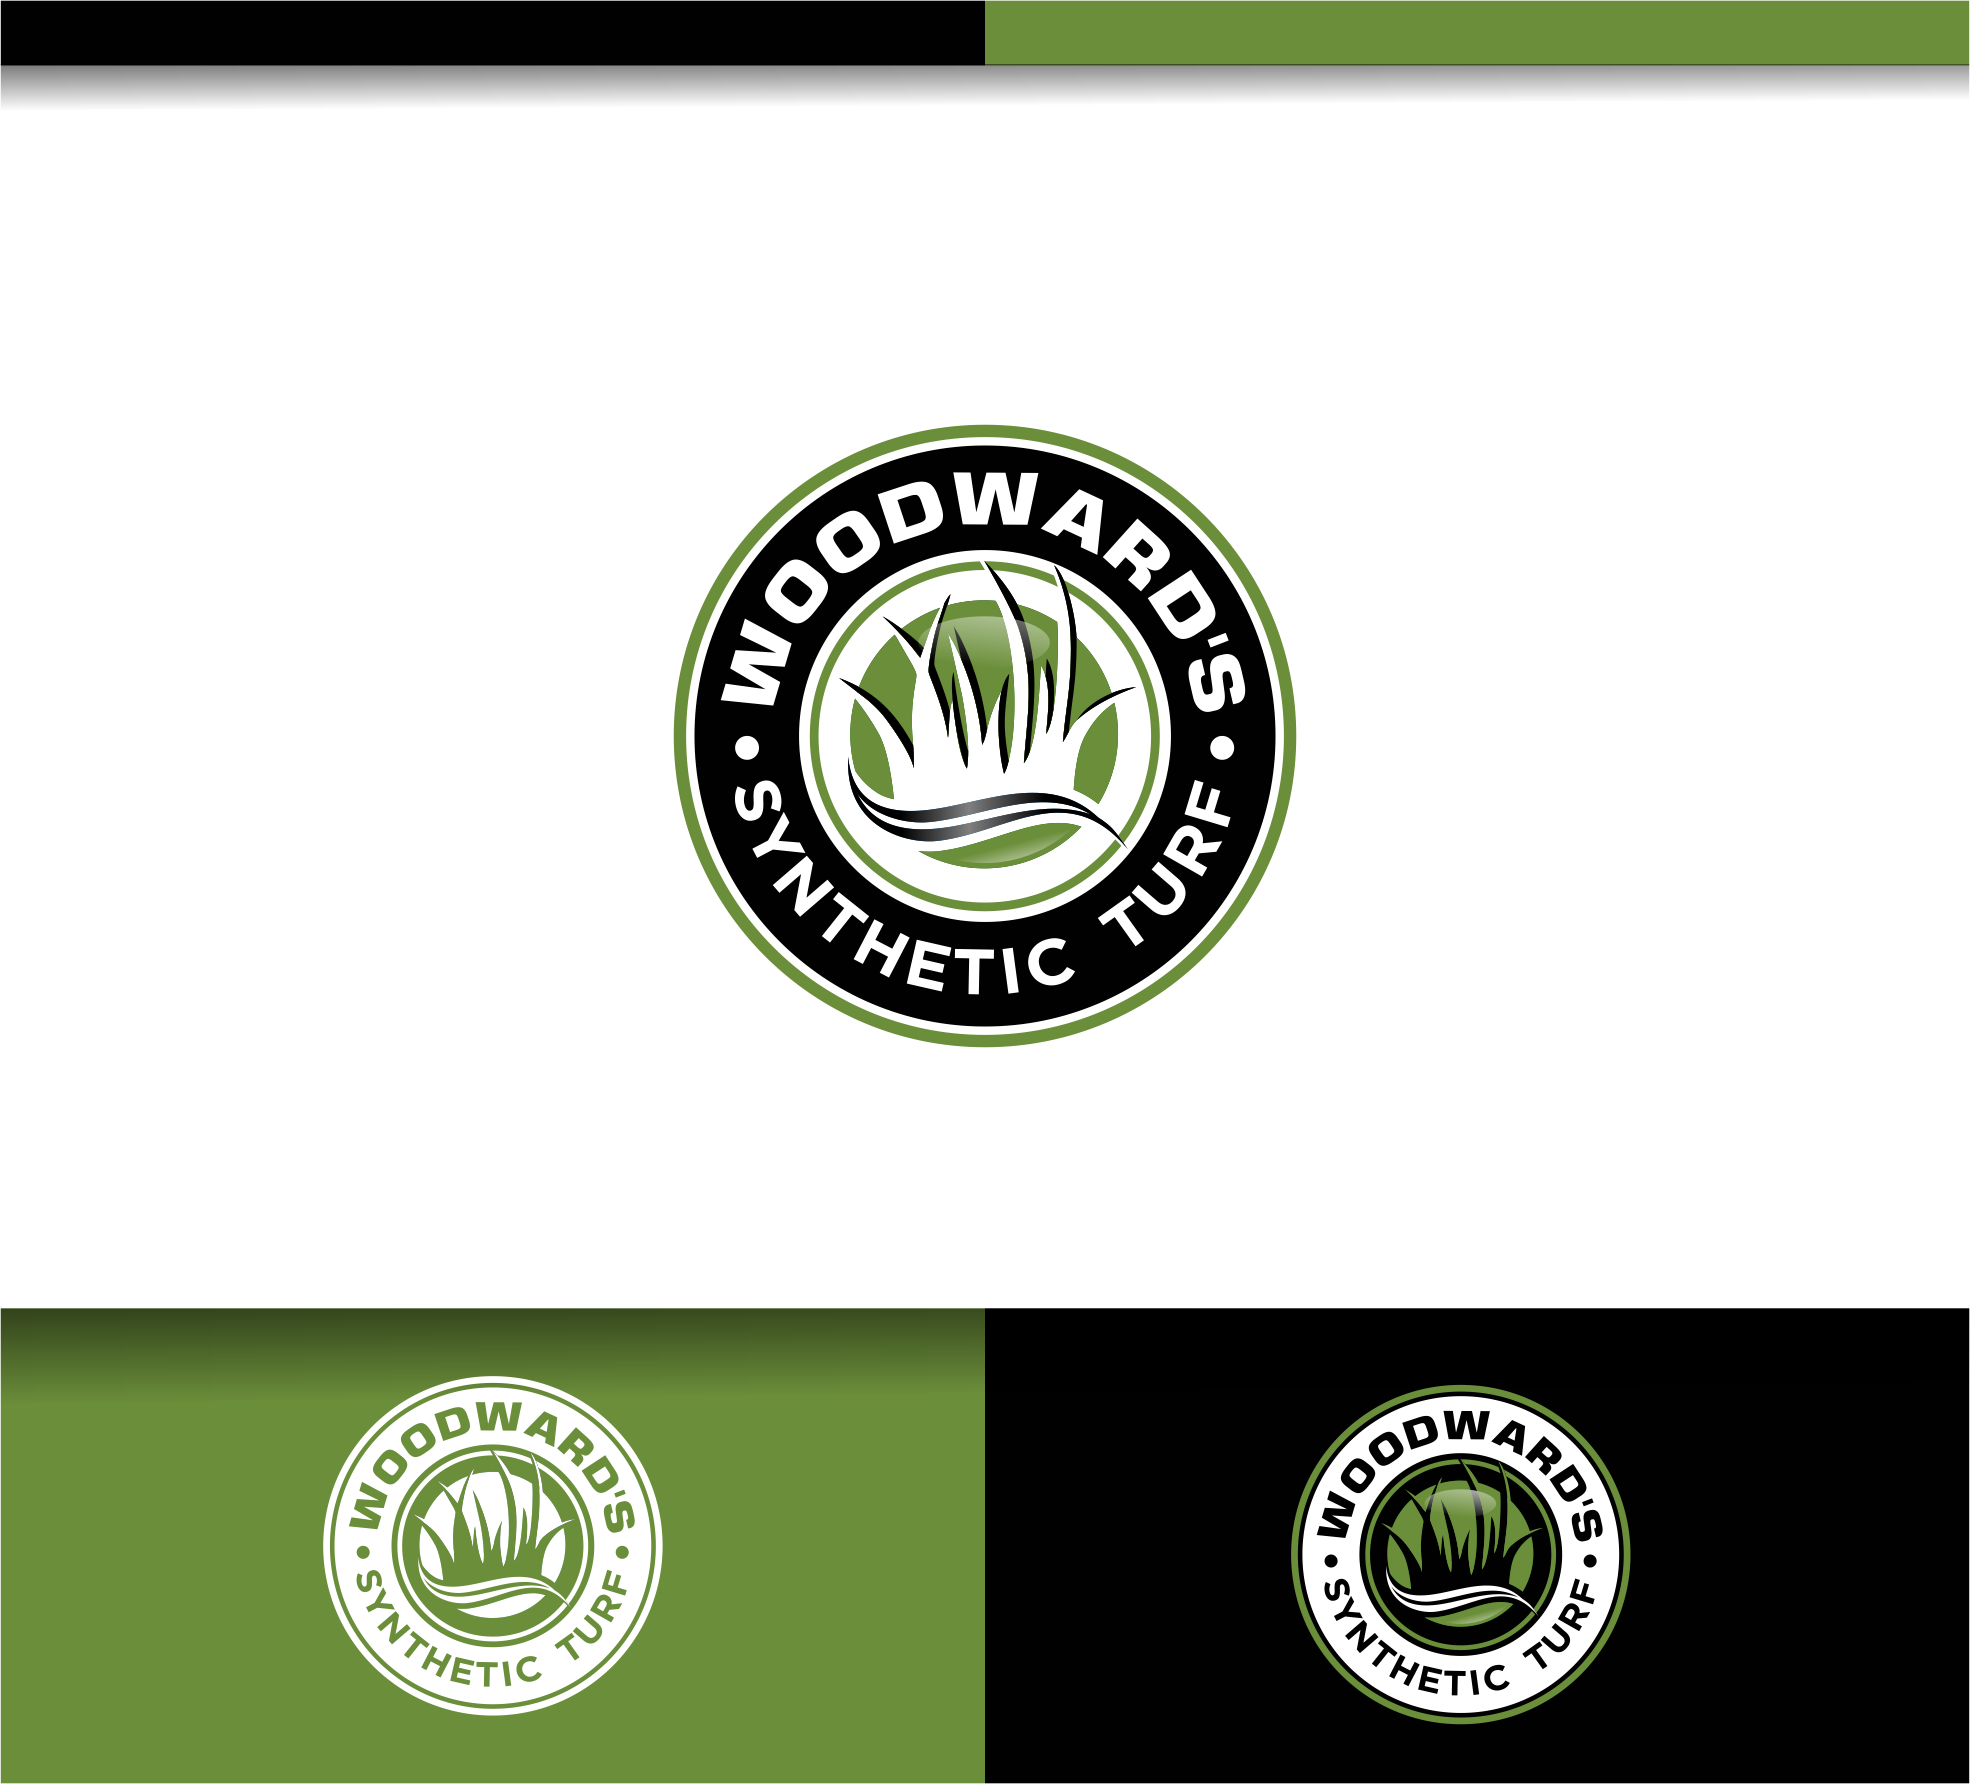 Logo Design by Raymond Garcia - Entry No. 90 in the Logo Design Contest Artistic Logo Design for Woodward's Synthetic Turf.